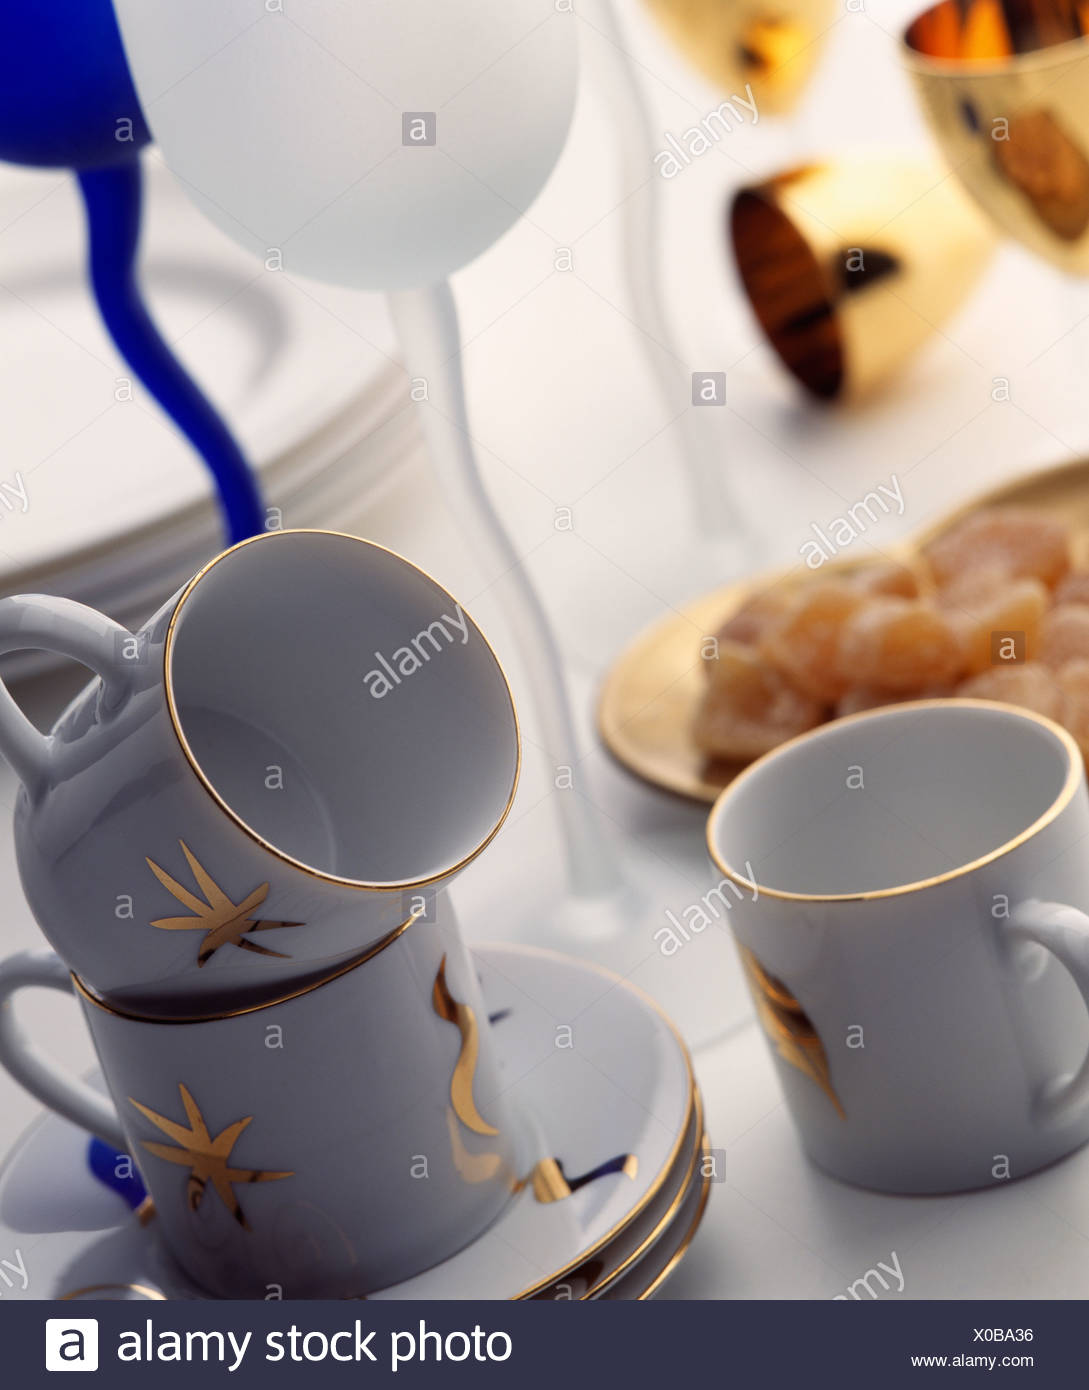 Close-up of white cups and saucers decorated with gold stamped motifs - Stock Image